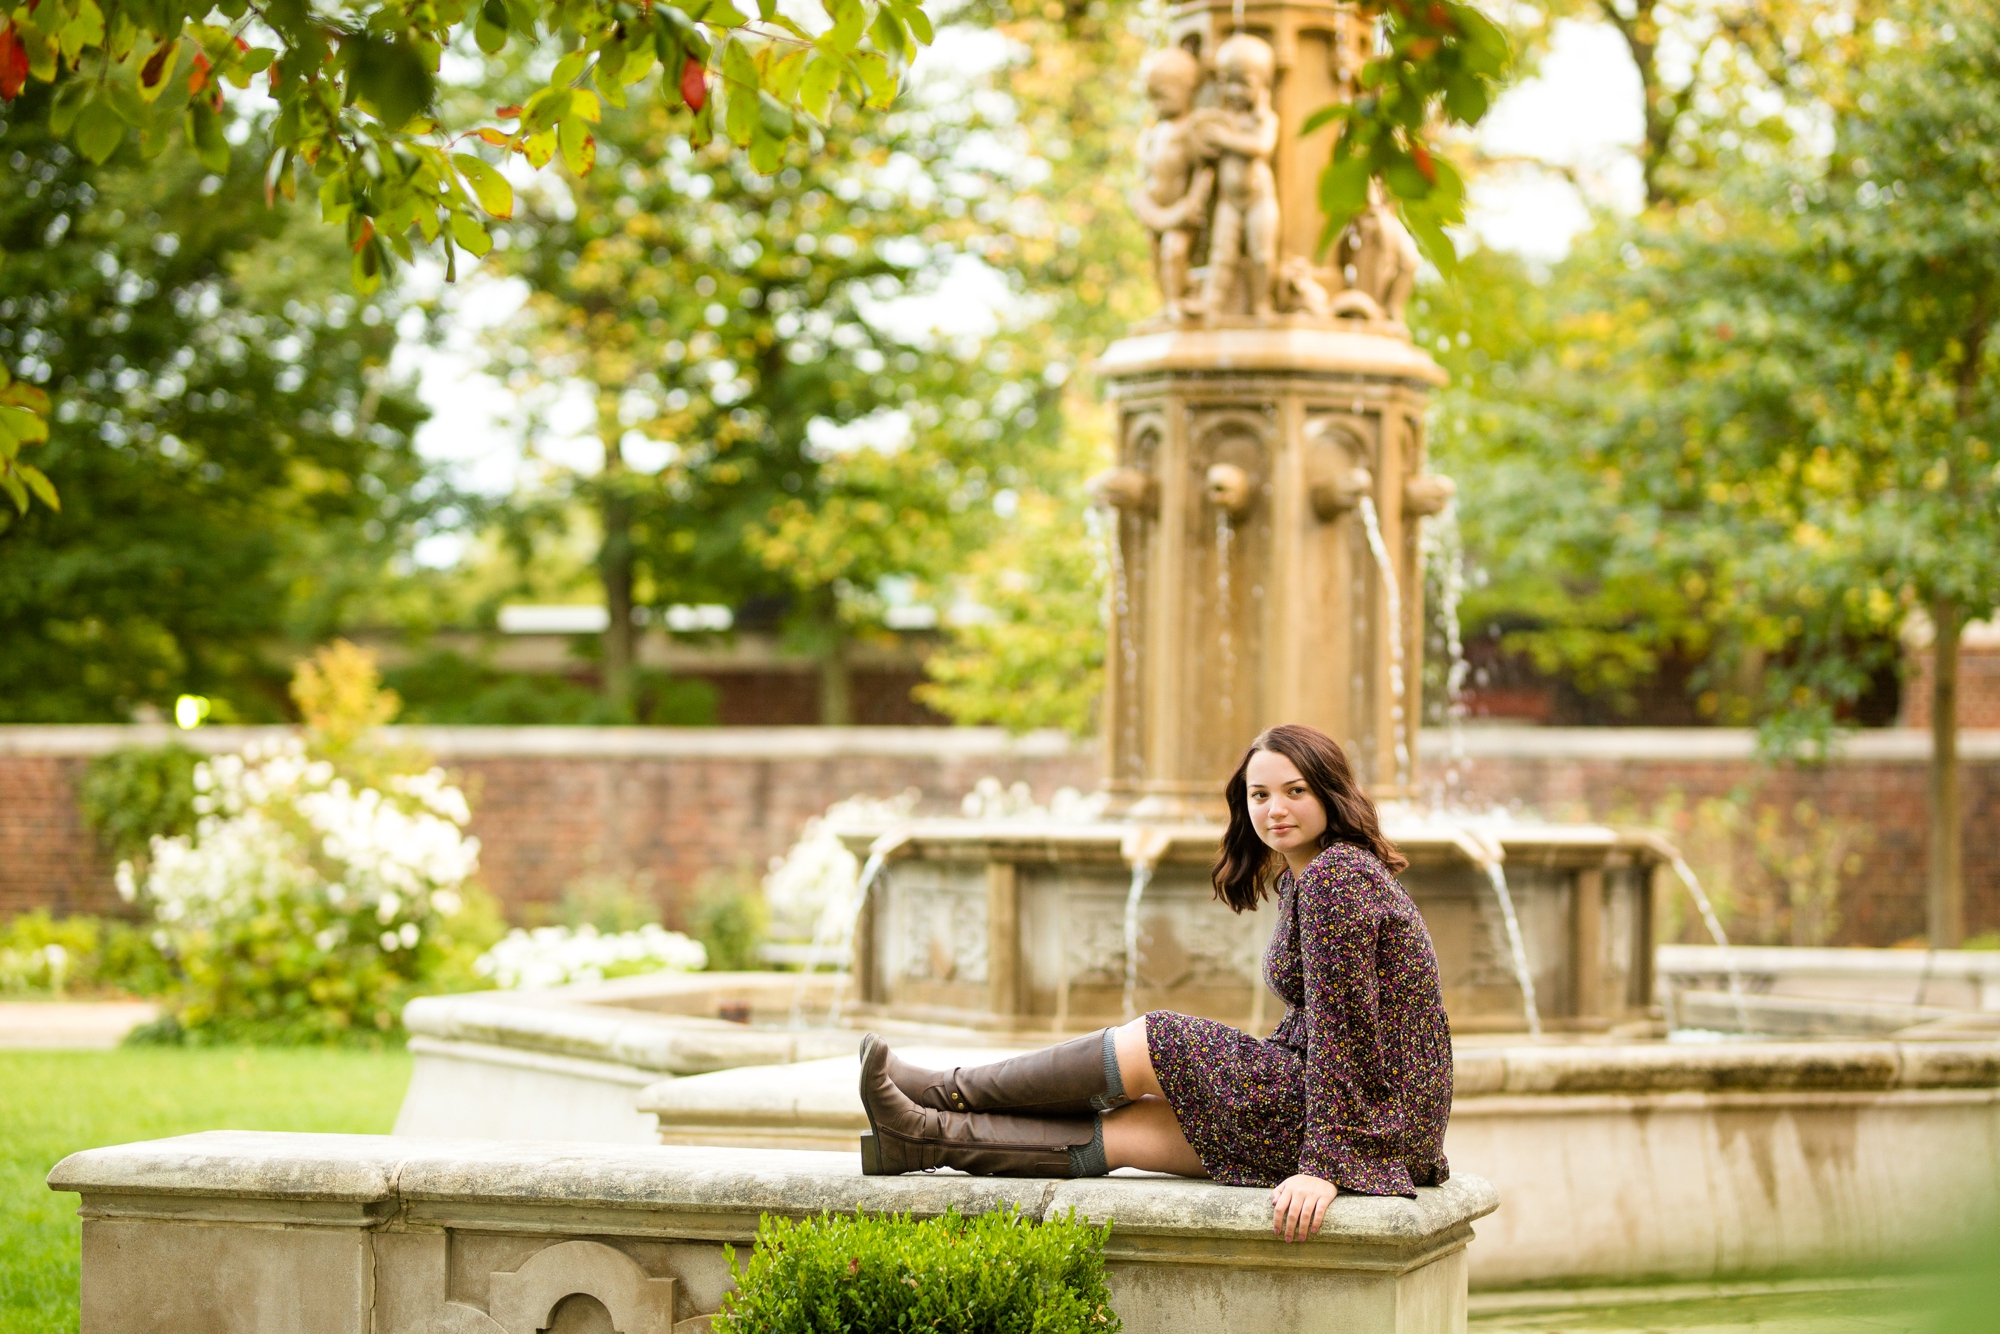 best senior photographer pittsburgh, hartwood acres senior photos, mcconnells mill senior photos, mellon park senior photos, places to take senior pictures in pittsburgh